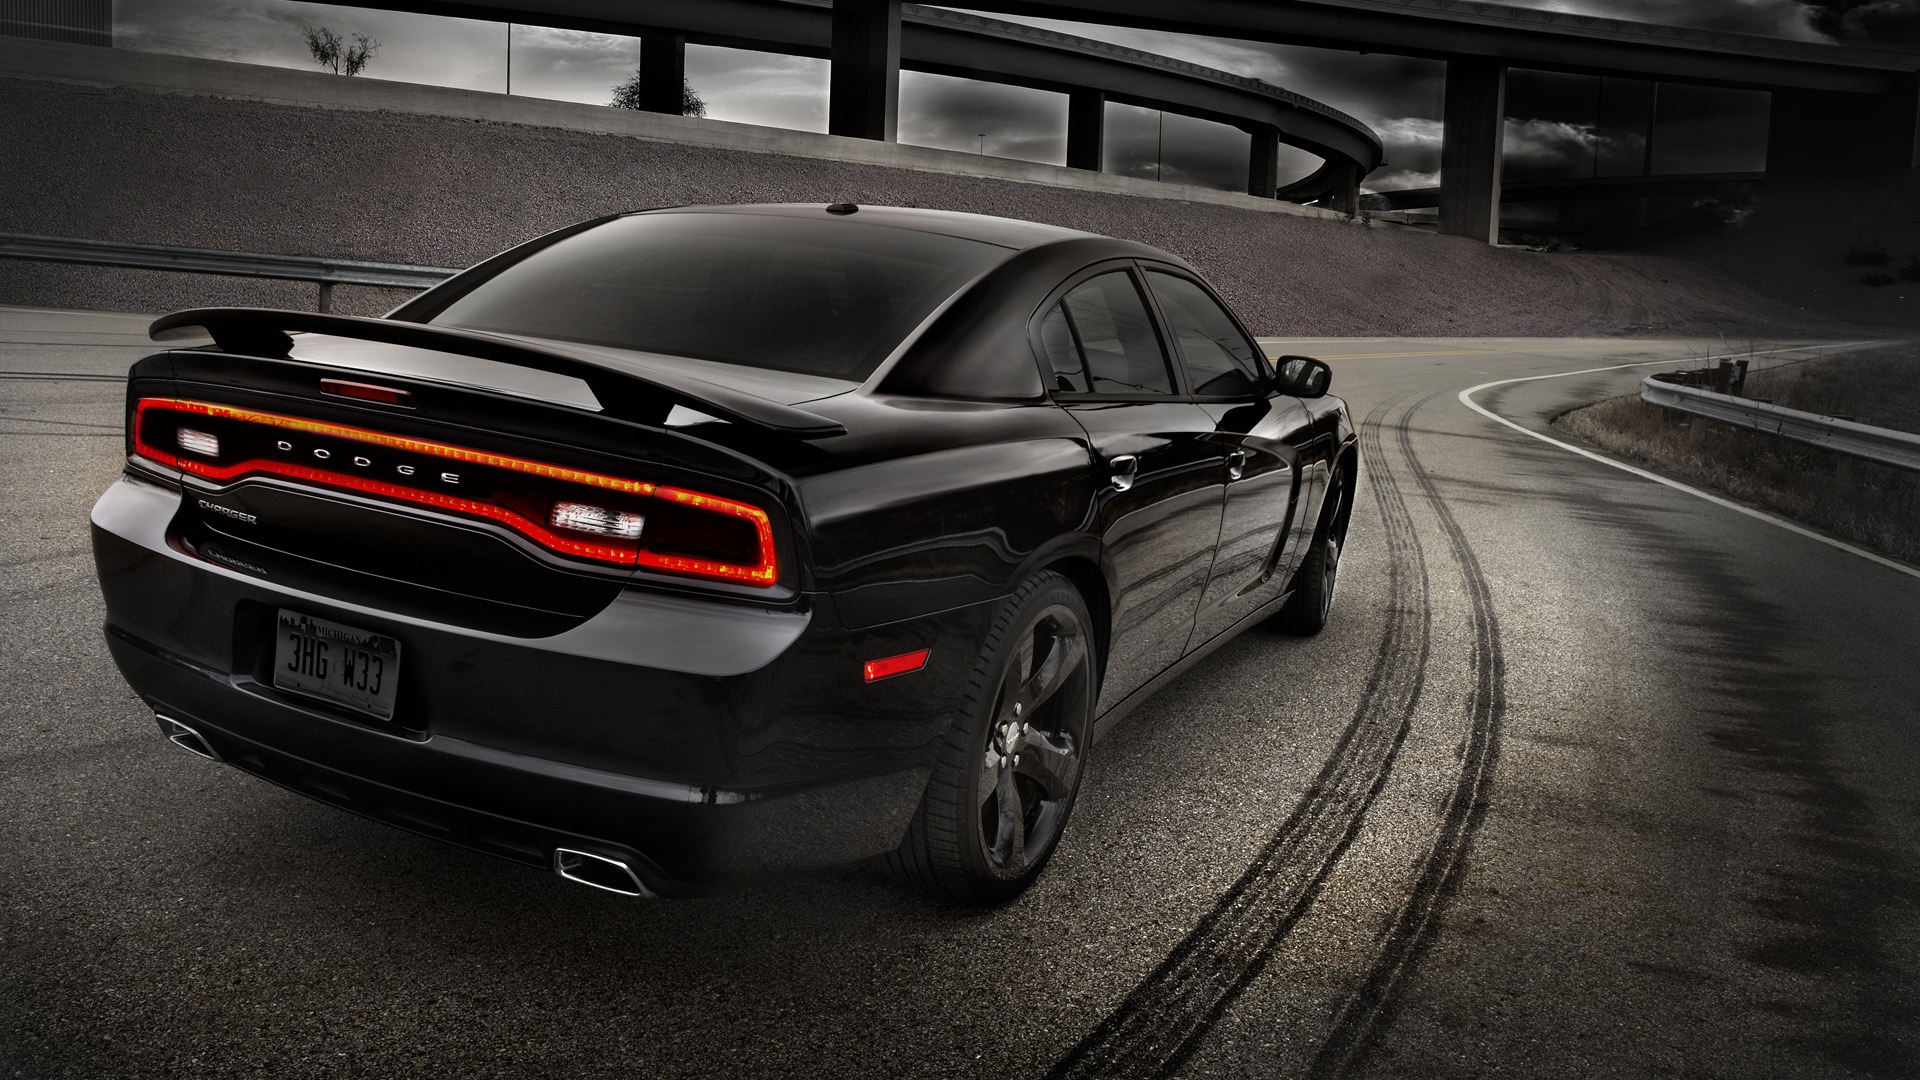 Dodge-Blacktop-Rear-–-1080-HD-wallpaper-wp3604871